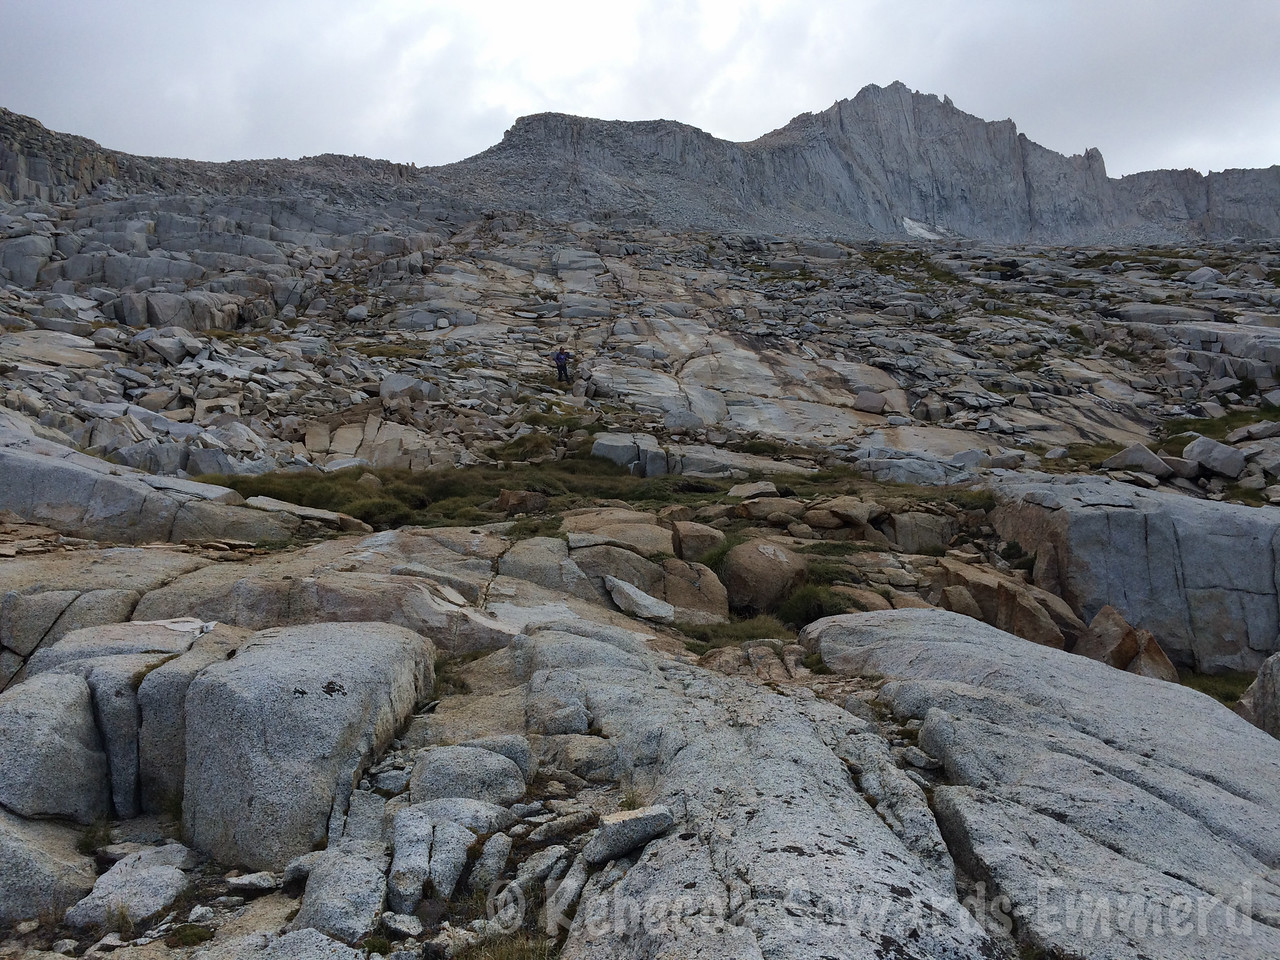 Looking back at Mt Brewer - I'll be back, it was a great route!